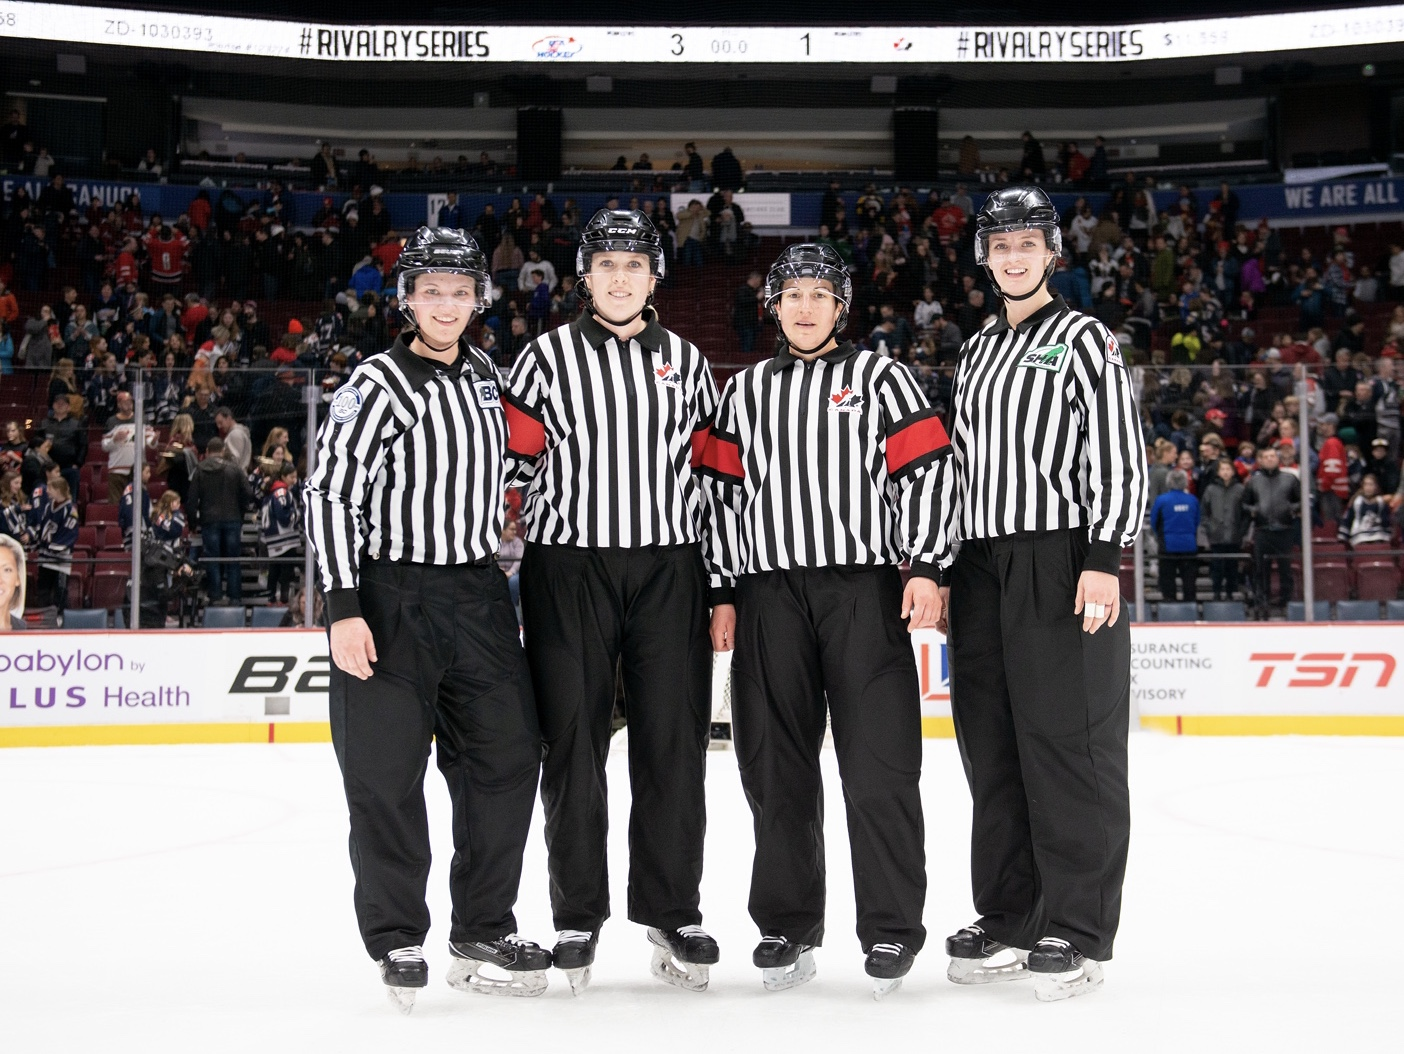 """""""I was skating with the two best teams in female hockey!"""" : PG ref reflects on Rivalry series"""